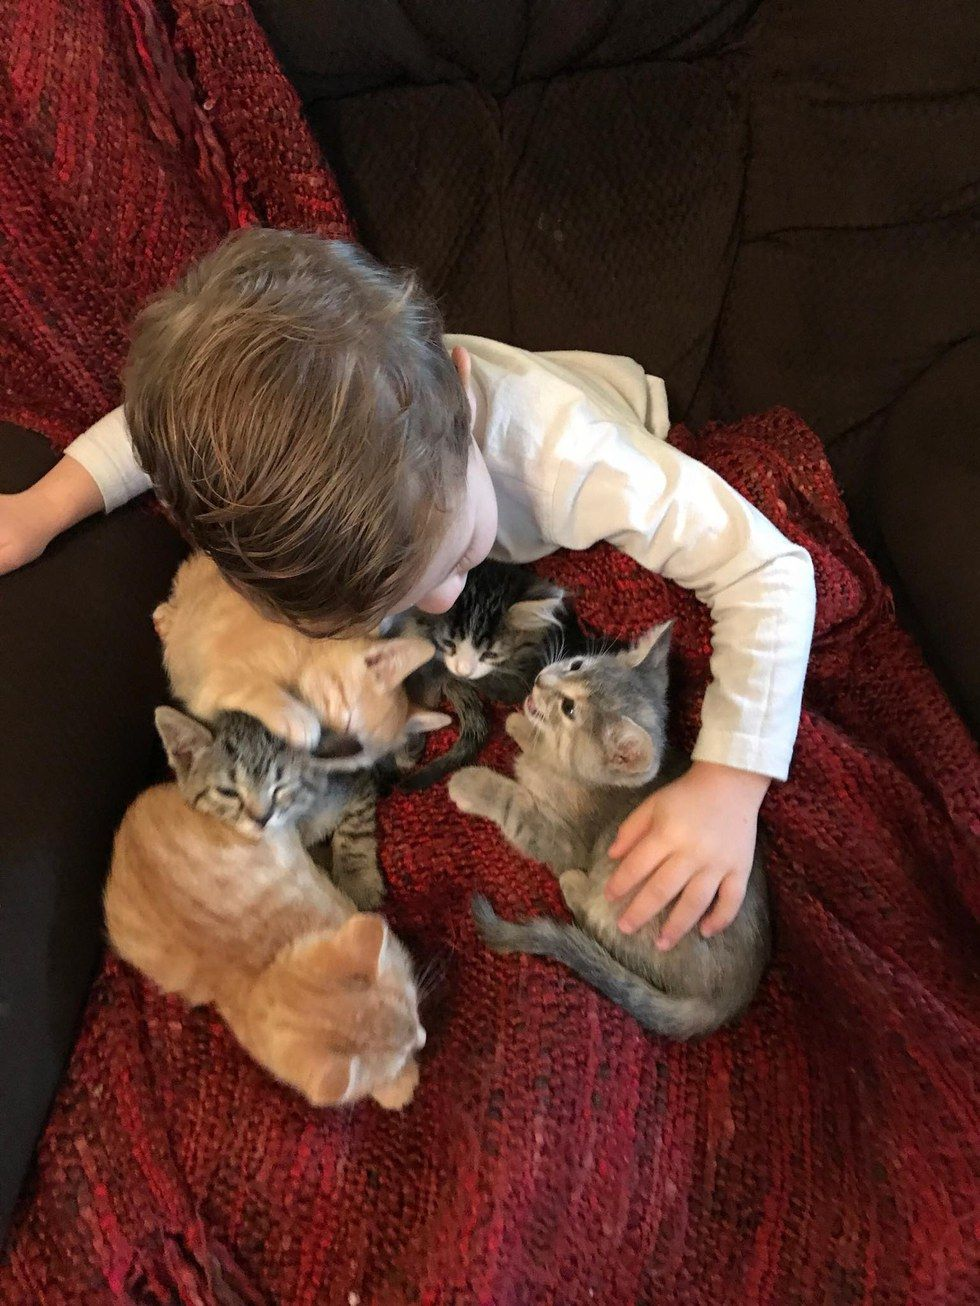 A Two Year Old Boy Sam Has Helped Foster 17 Kittens With His Family And He Takes Caring For Kitties In Need Very Seriousl Kittens Foster Kittens Work Friends